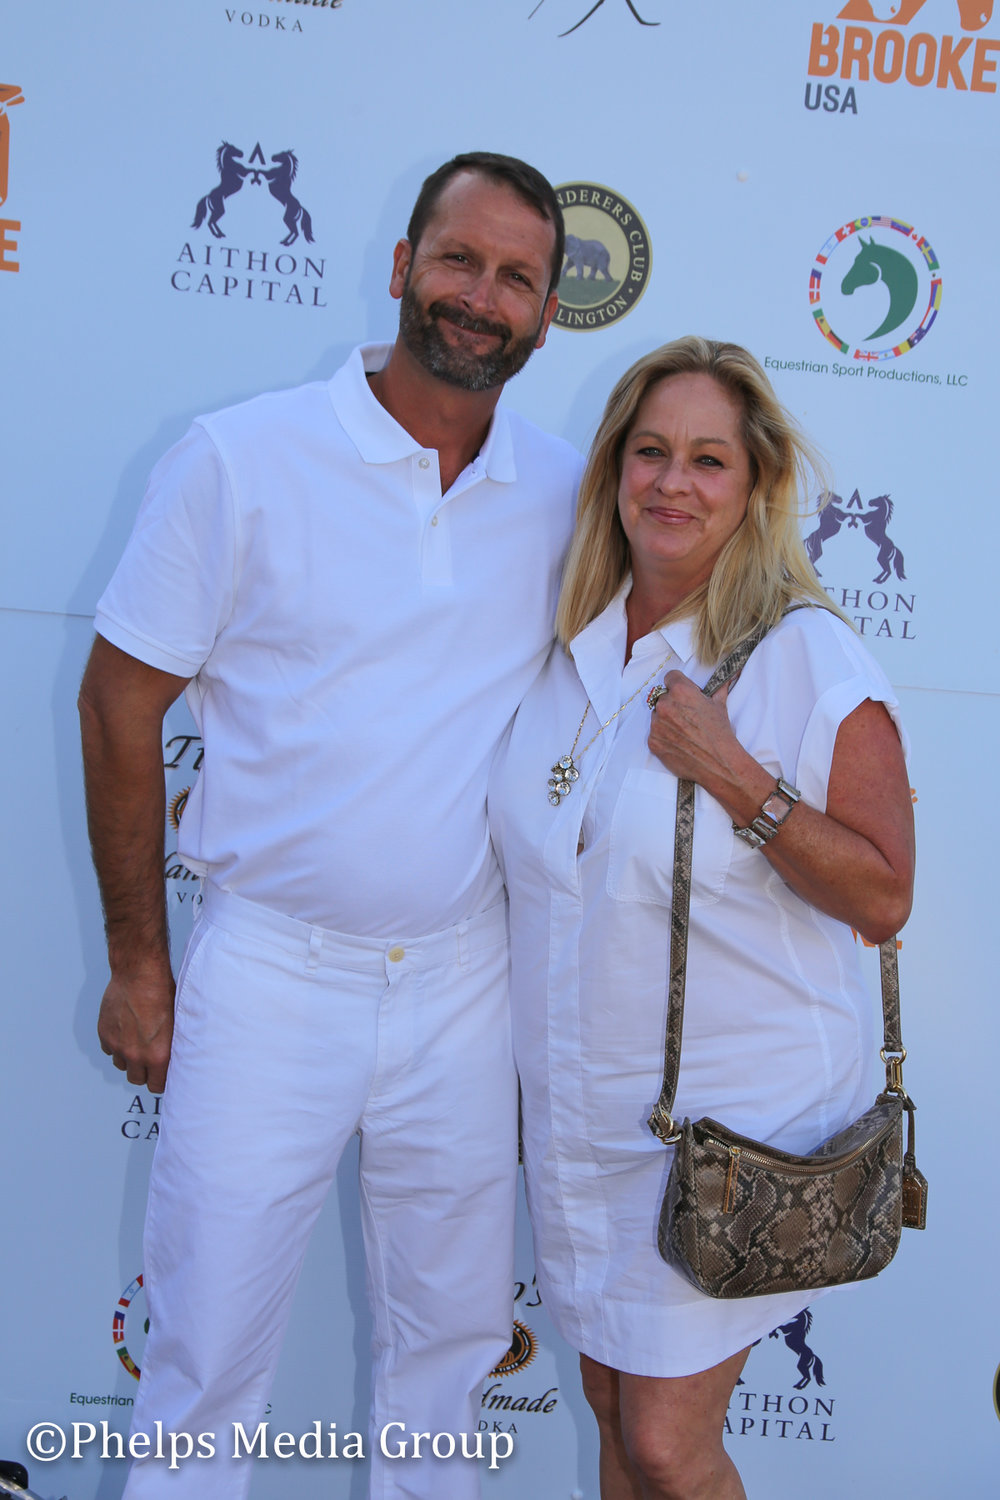 Lisa Keating and Chad Jacobs; Nic Roldan's 2nd Annual Sunset Polo & White Party, FL, by Phelps Media.jpg